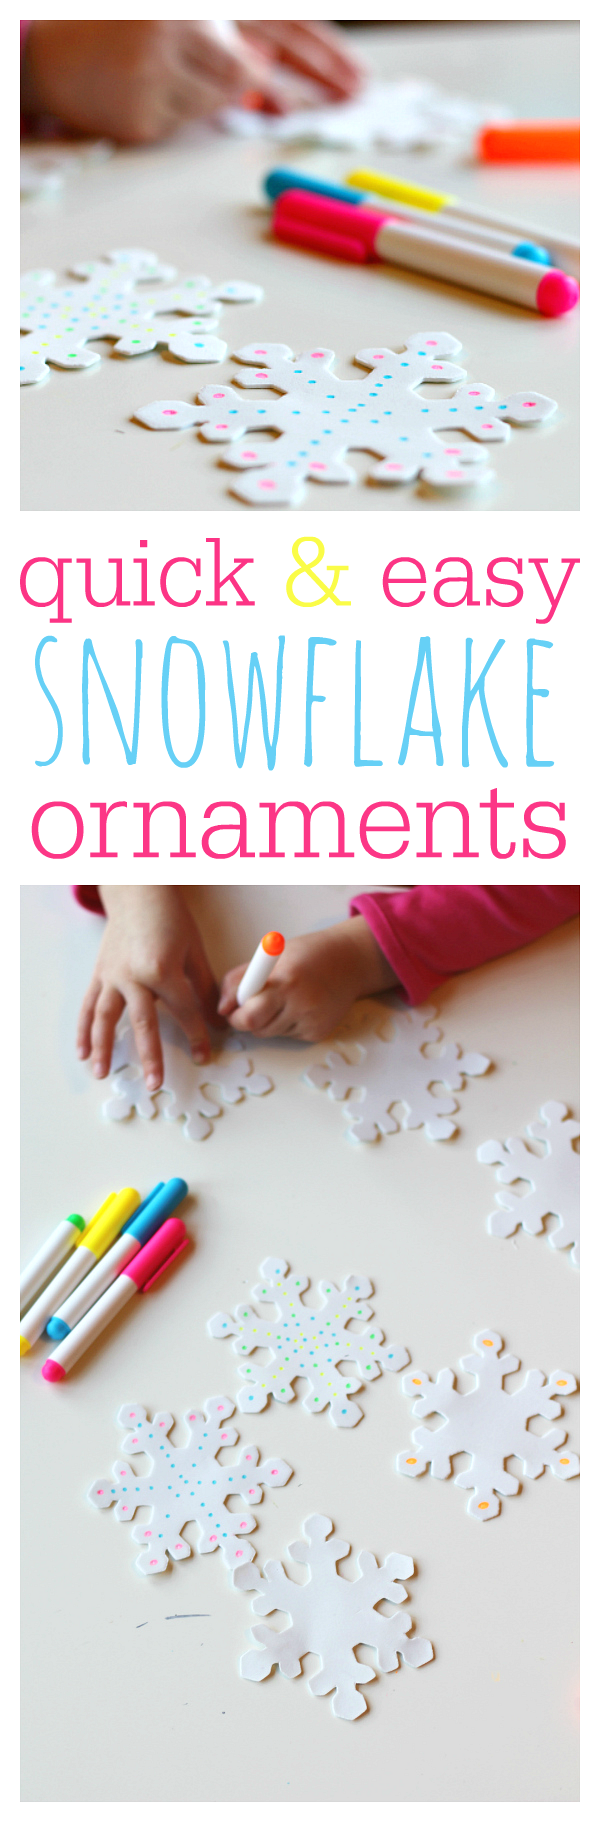 snowflake ornaments | 25+ ornaments kids can make